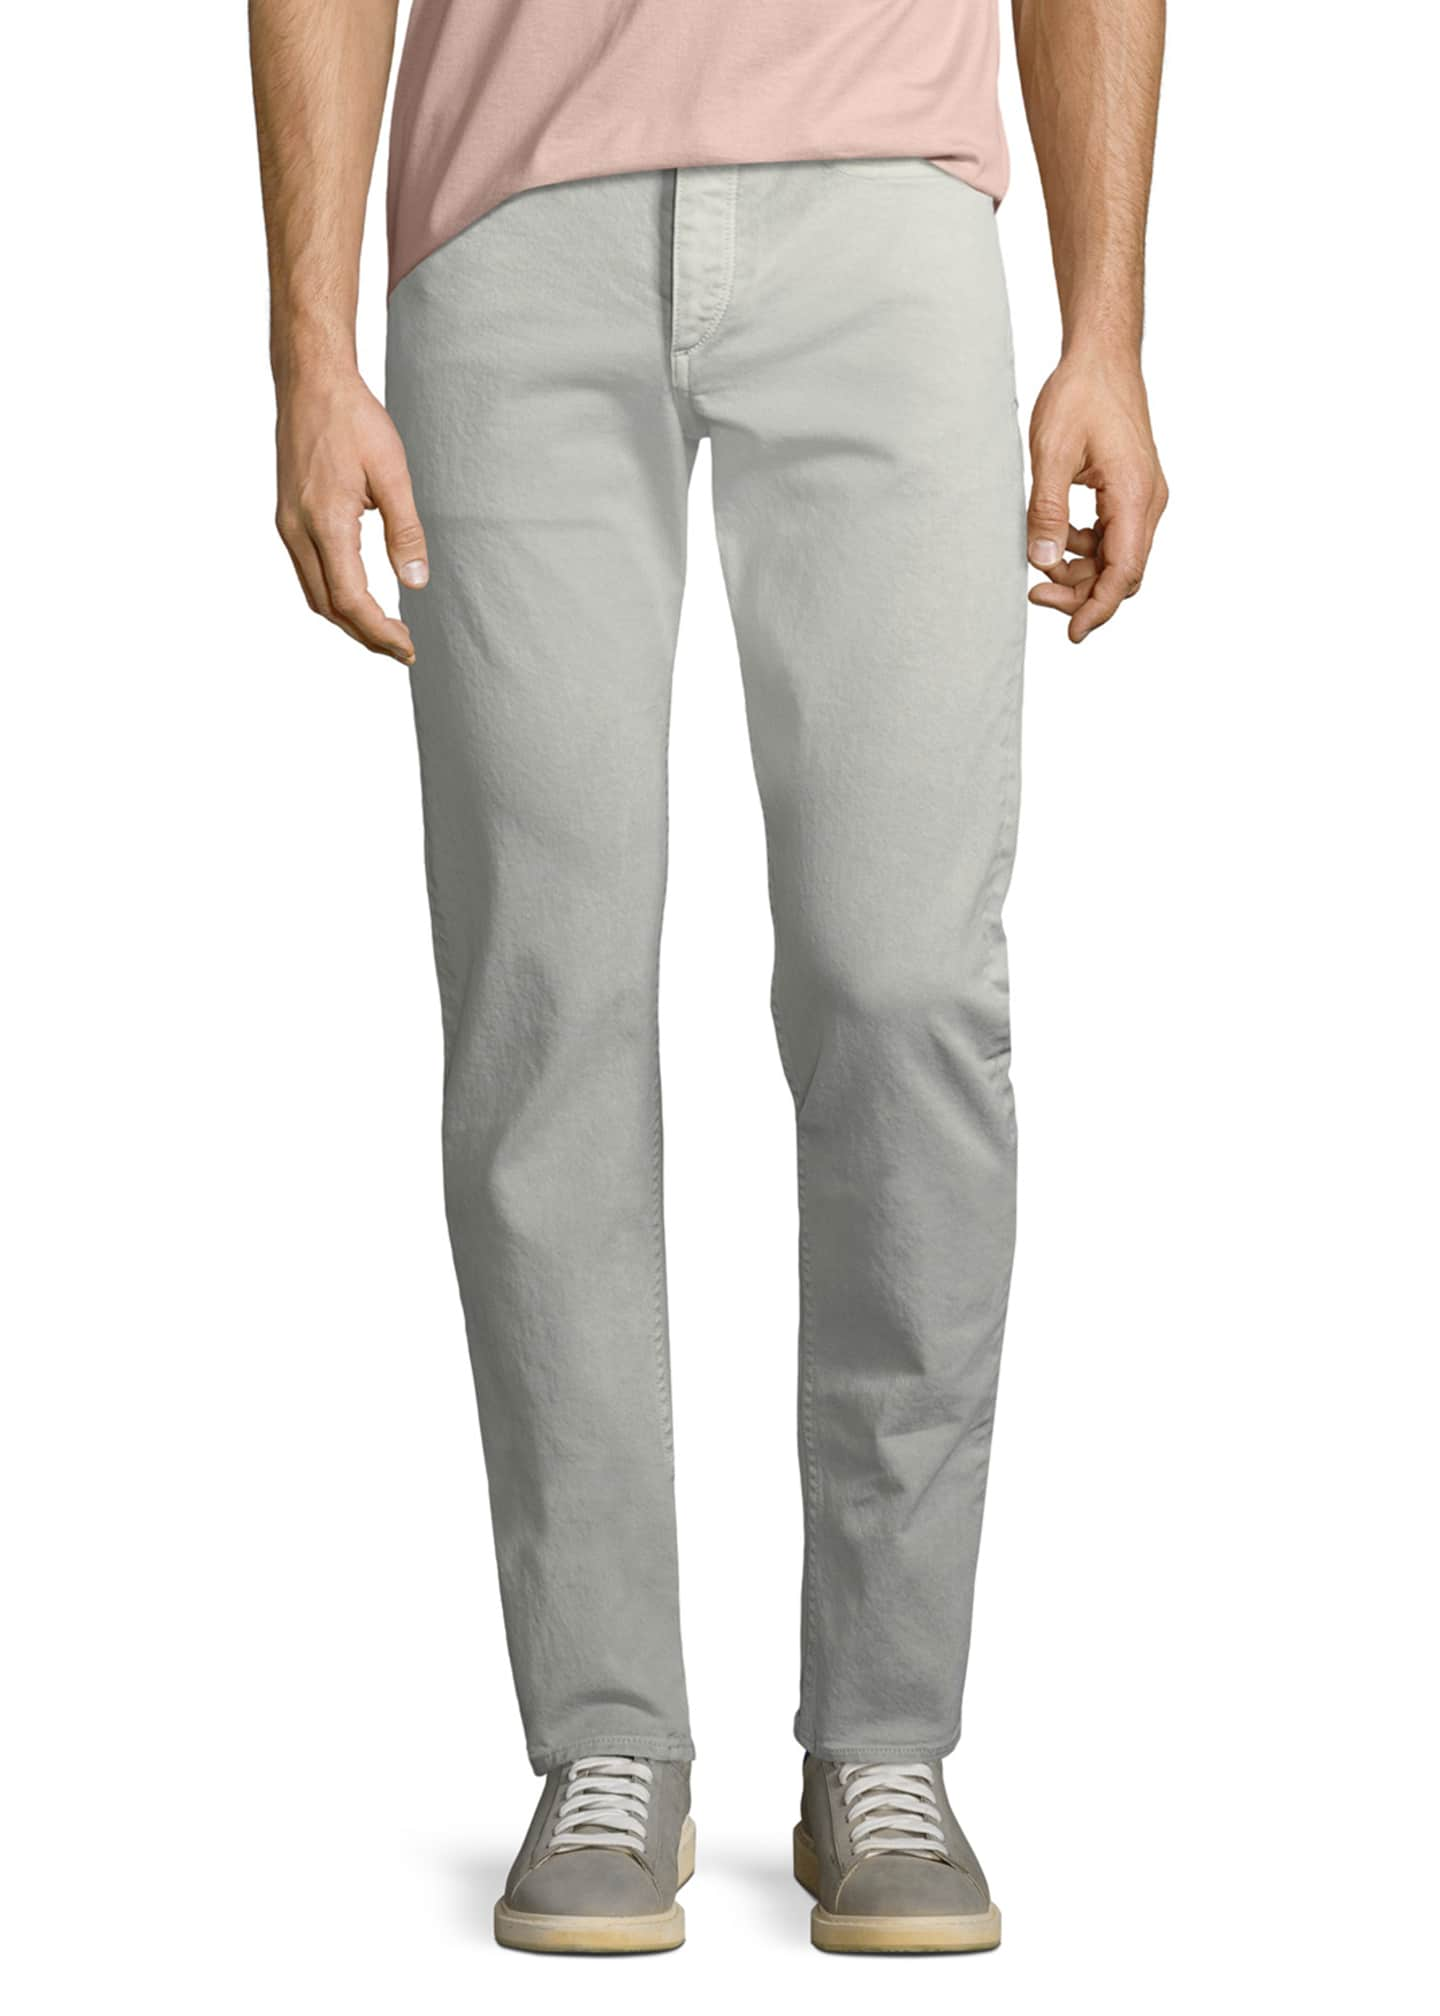 Rag & Bone Men's Fit 2 Mid-Rise Slim-Fit